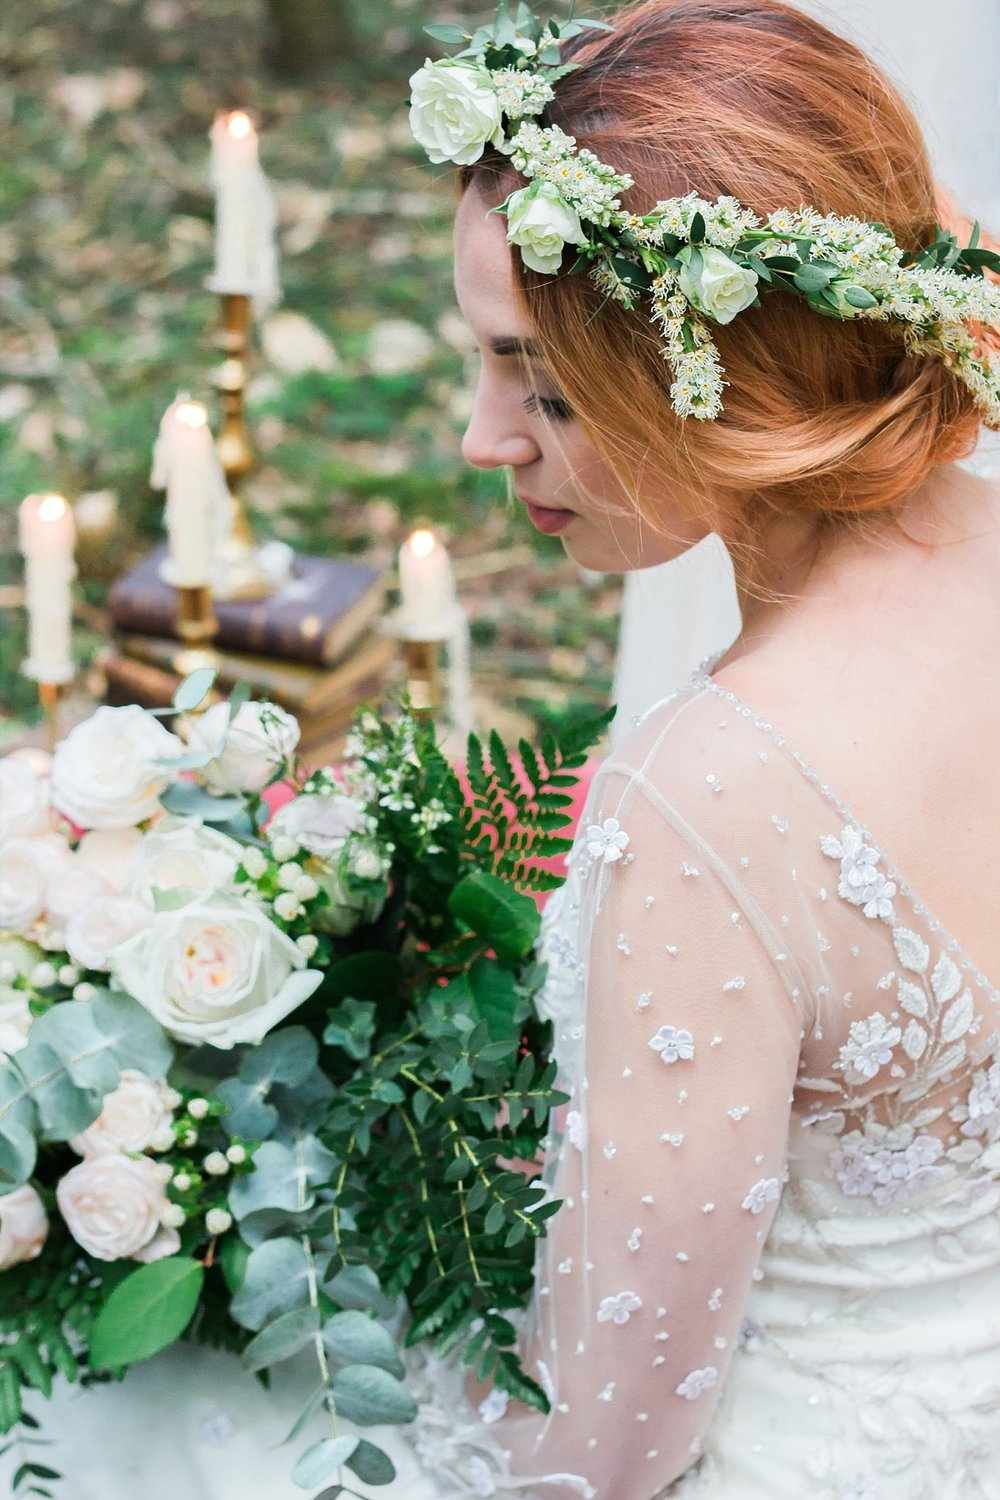 Vintage Amy Wedding Styling-Whimsical Woodland Wedding Inspiration Kent-Vintage Styling and Hiring Kent